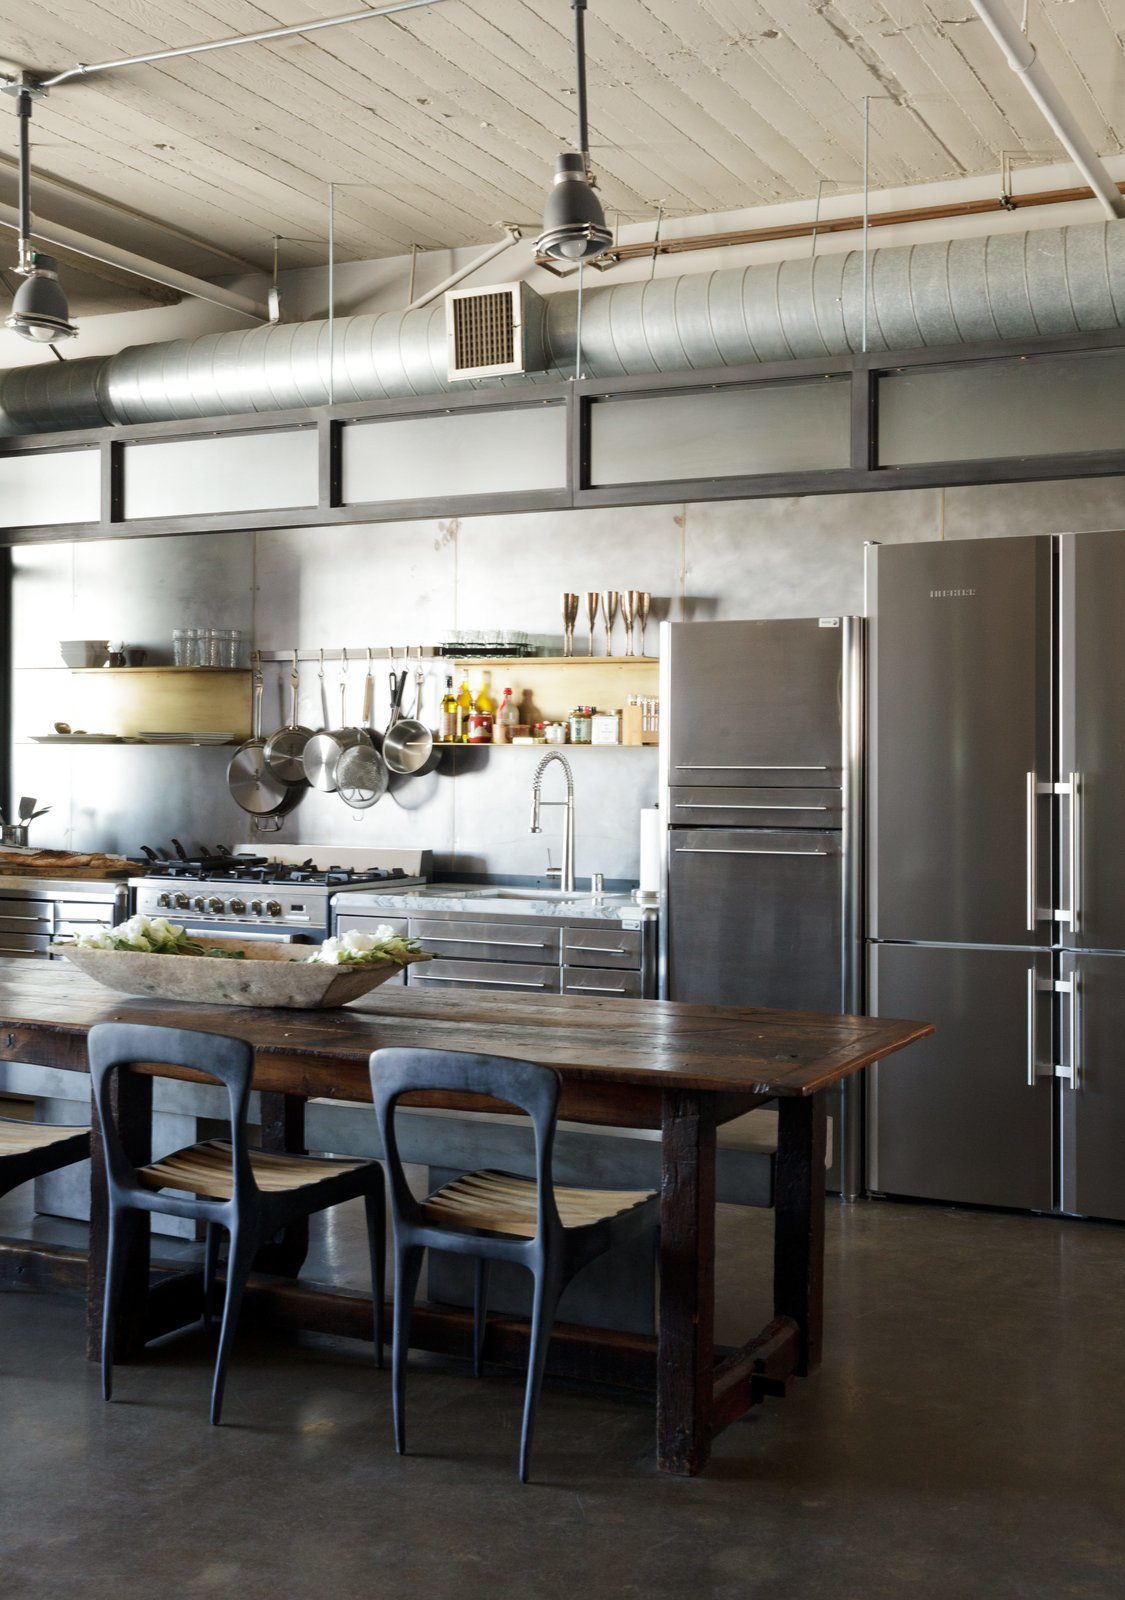 Kitchen, Refrigerator, Undermount Sink, Ceiling Lighting, Pendant Lighting, and Range In a loft renovated by designer Andrea Michaelson, a Liebherr refrigerator blends in with stainless-steel cabinets from Fagor. Flow chairs by Henry Hall Designs and CB2 benches pull up to an antique farm table.  Photo 2 of 6 in Steel and Brass Cover Nearly Every Surface of this Industrial L.A. Kitchen